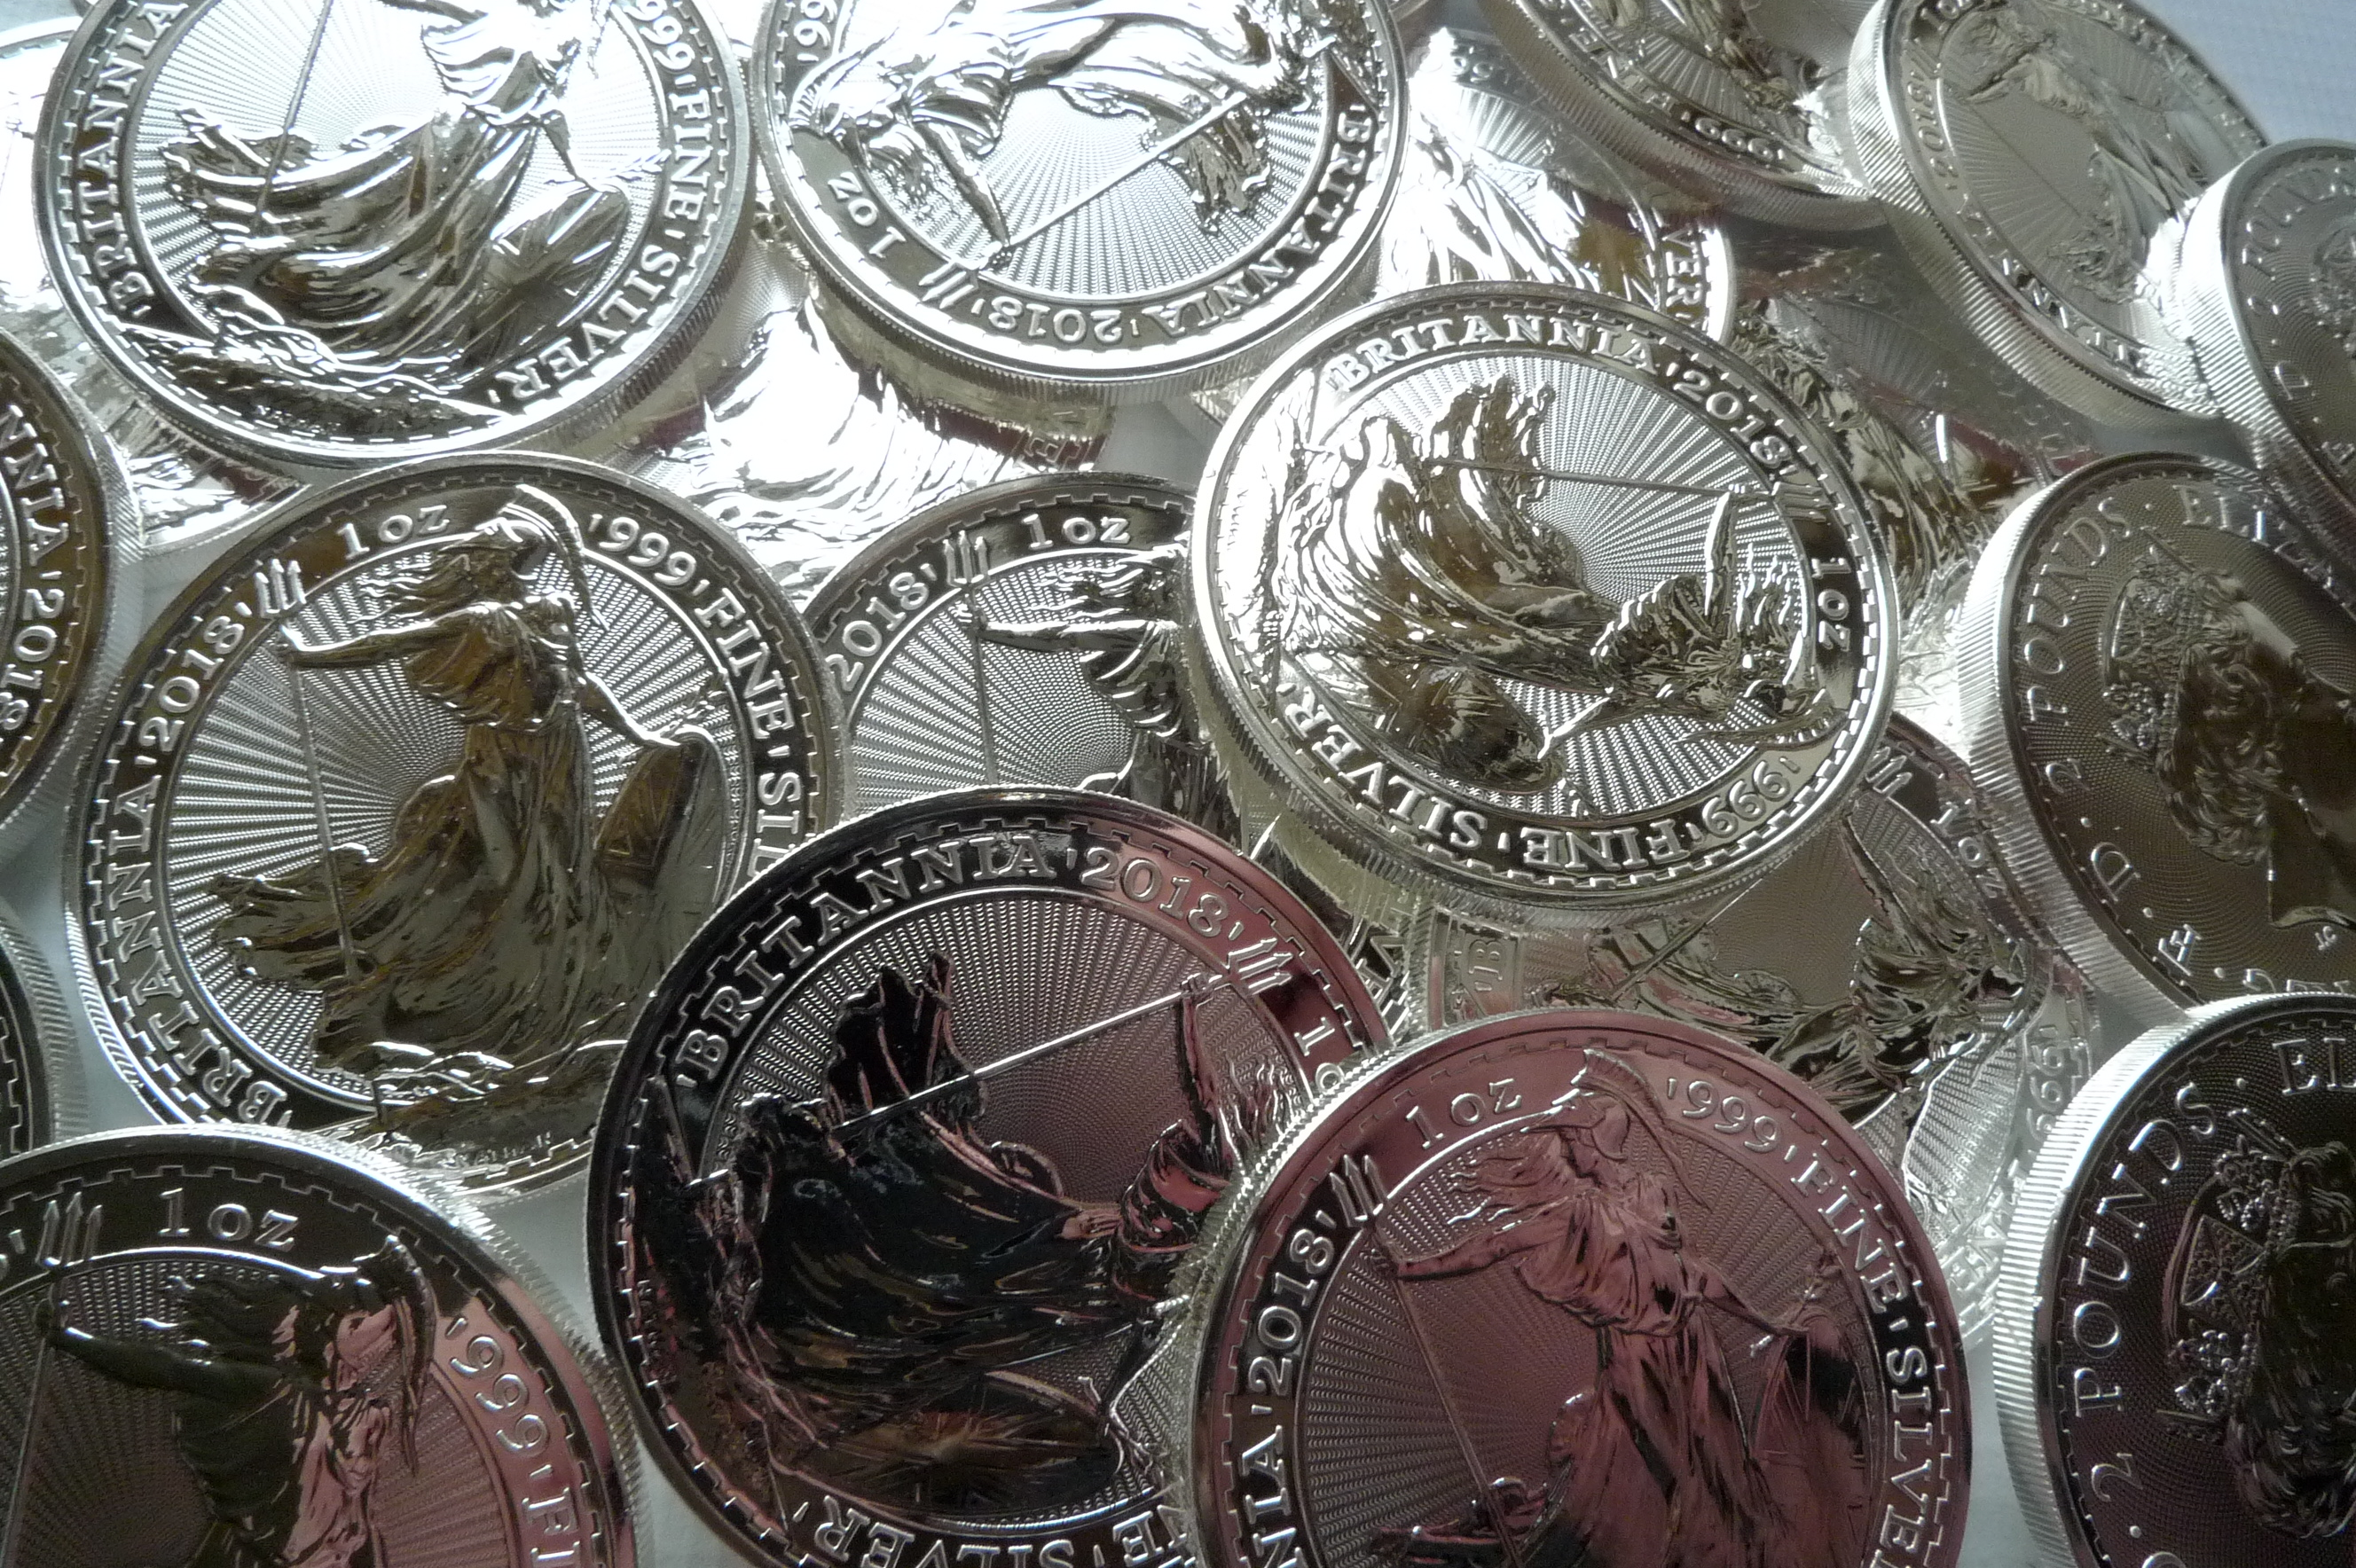 silver bullion uk coins